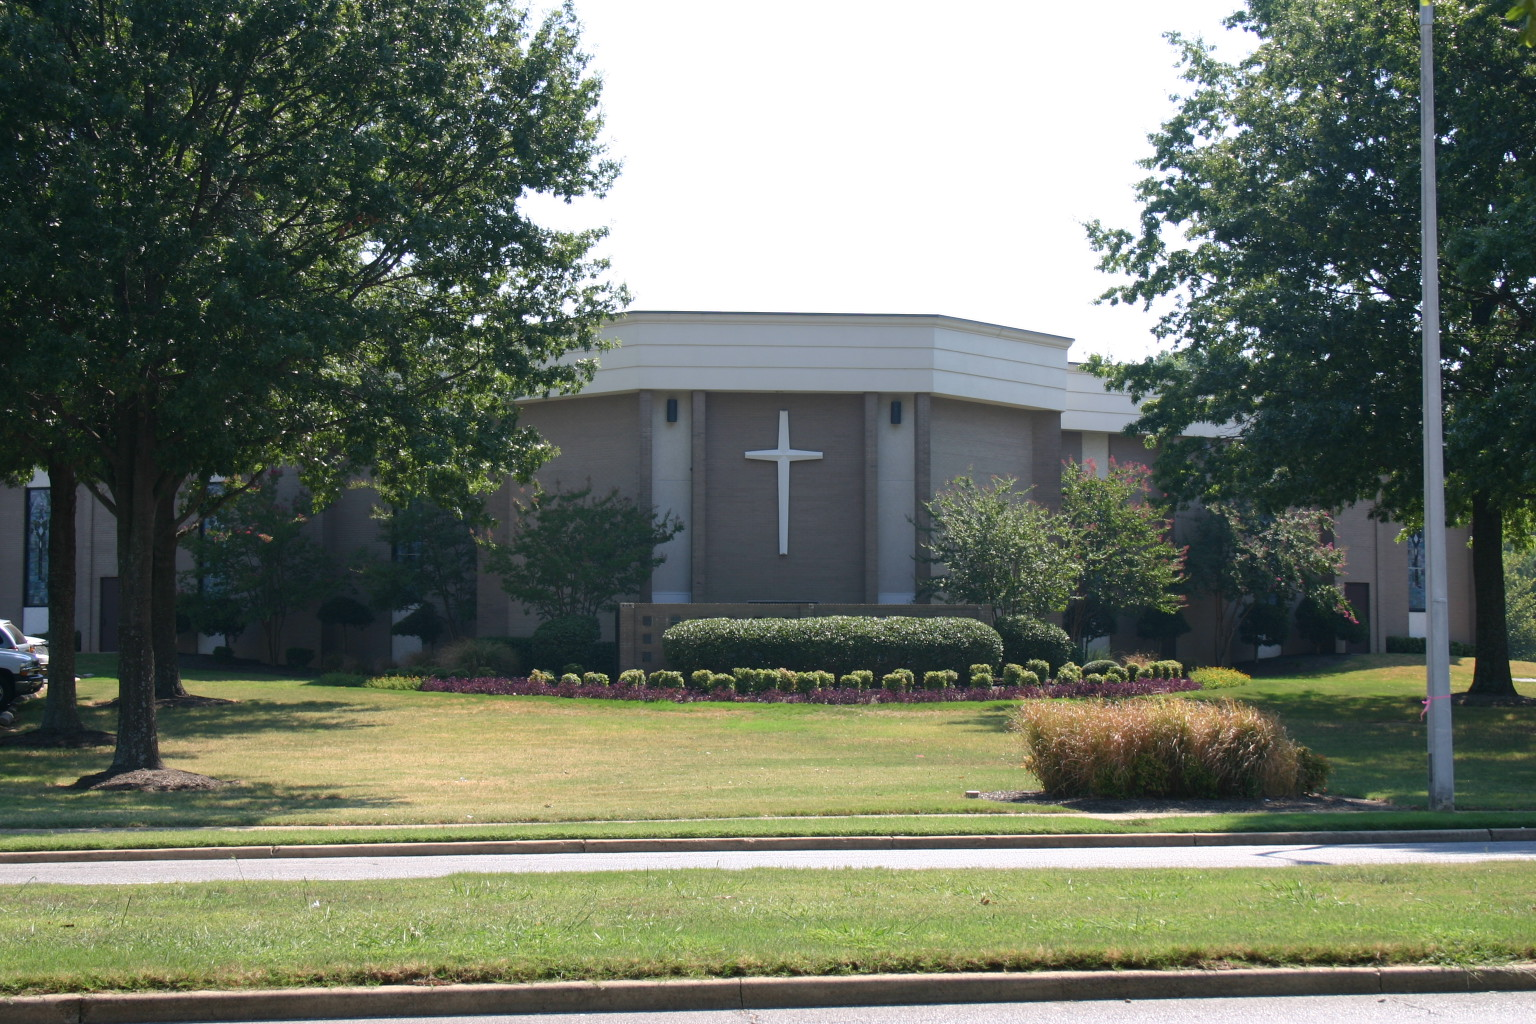 Sycamore View Church of Christ 006.jpg